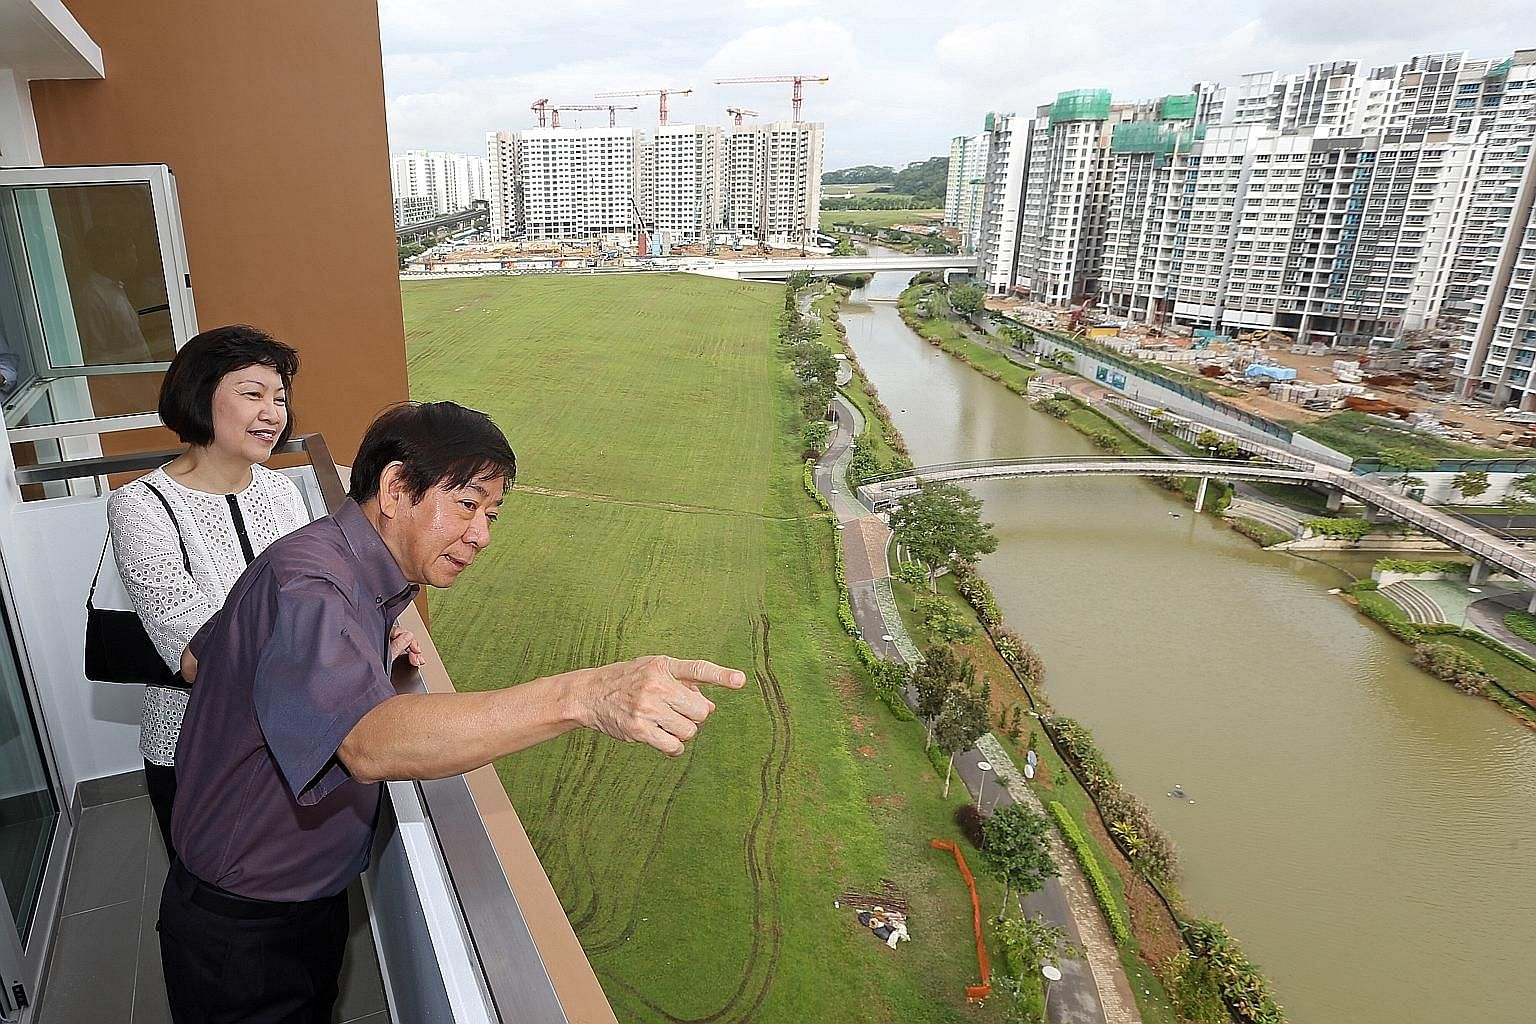 Mr Khaw Boon Wan previously served as national development minister when housing was a hot-button issue. He is seen here in a 2014 file photo with HDB CEO Cheong Koon Hean viewing the projects along Punggol Waterway. ST FILE PHOTO